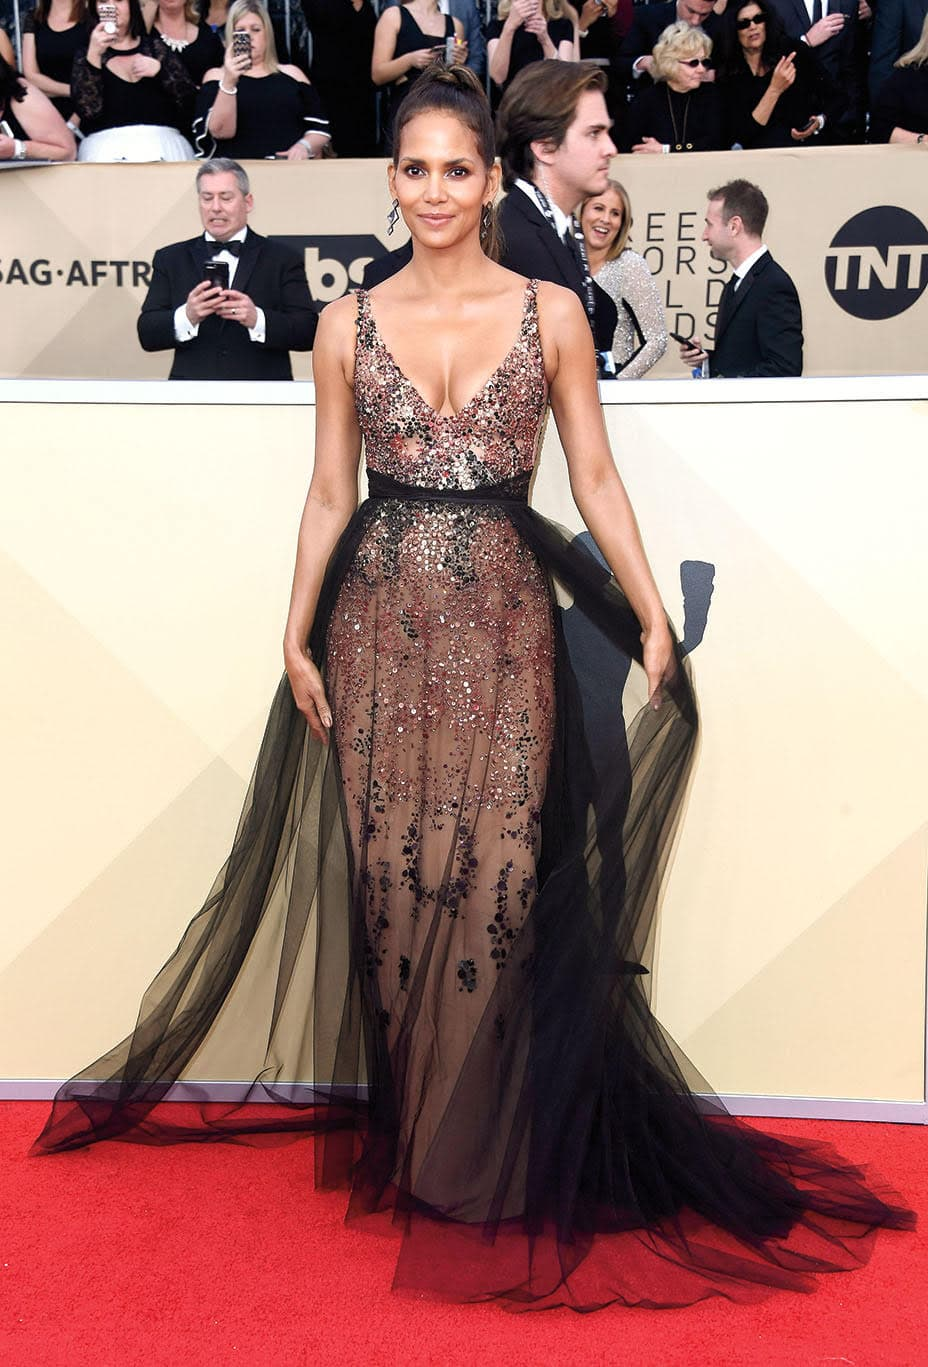 Halle Berry at the 2018 Screen Actors Guild Awards